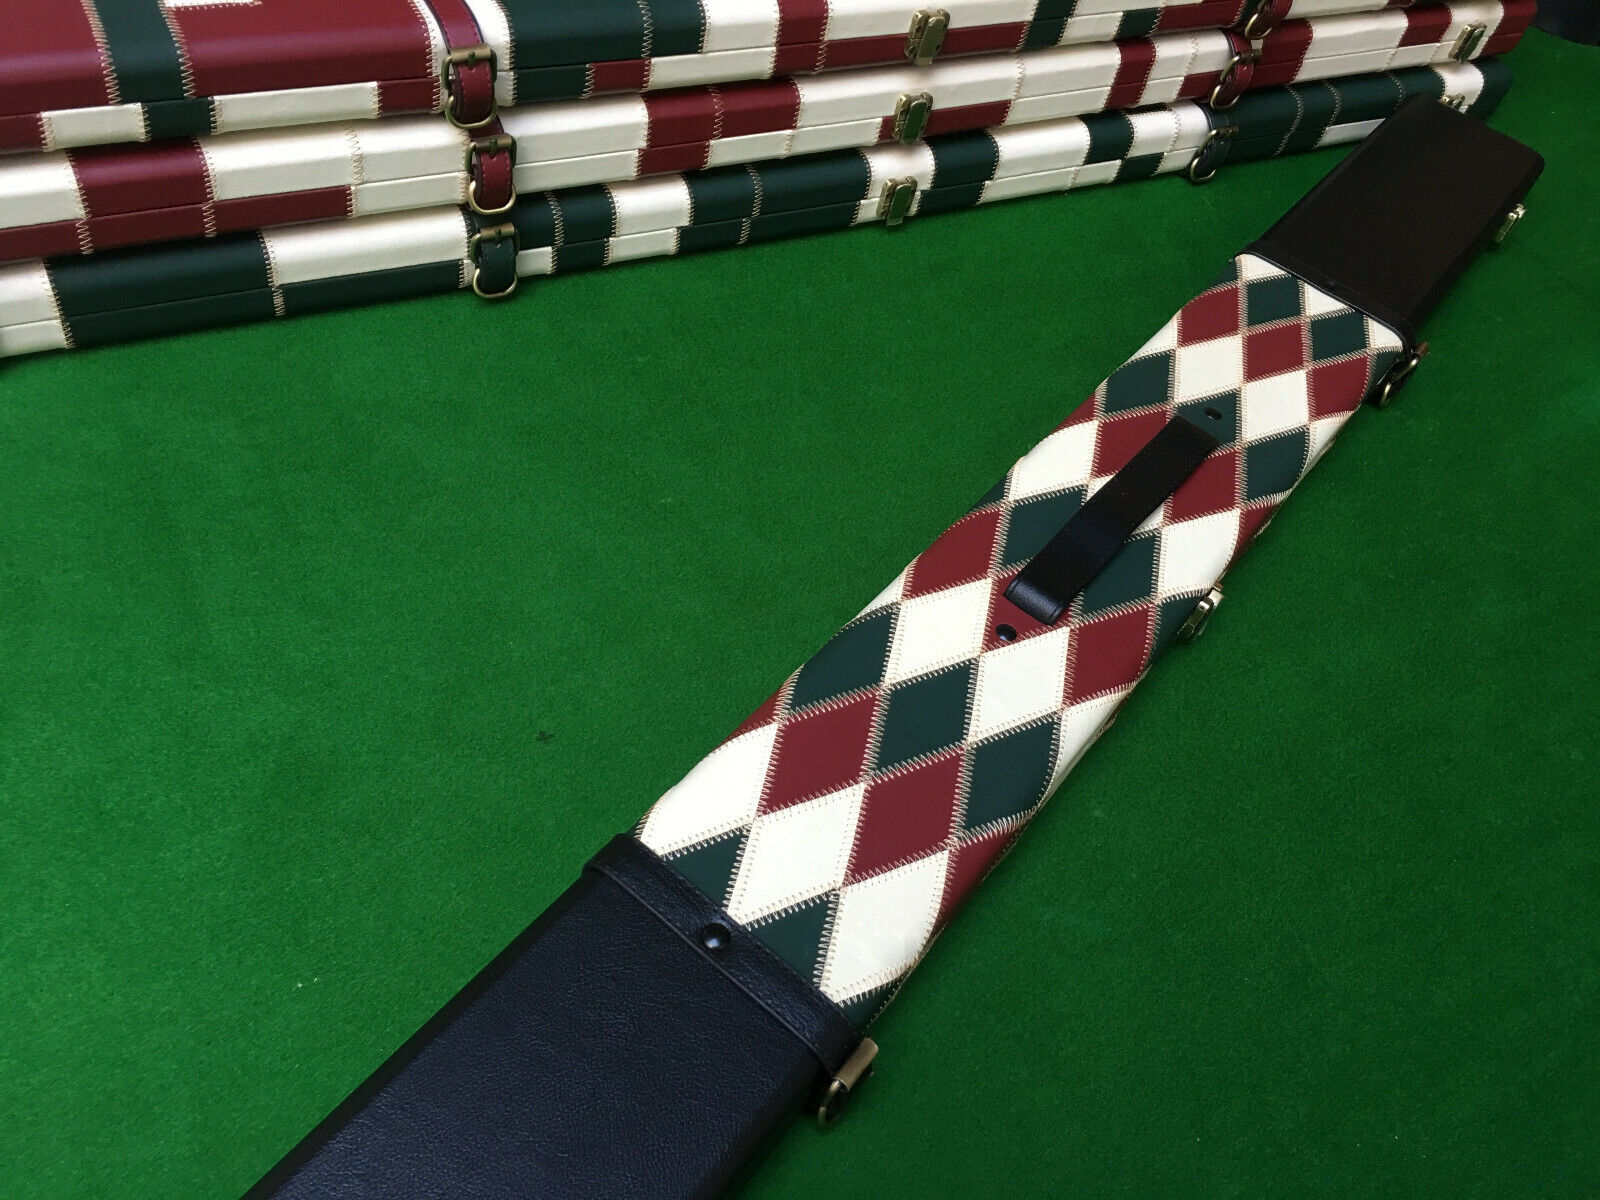 3/4 Wide 3 Section Snooker Cue case / Pool cue case